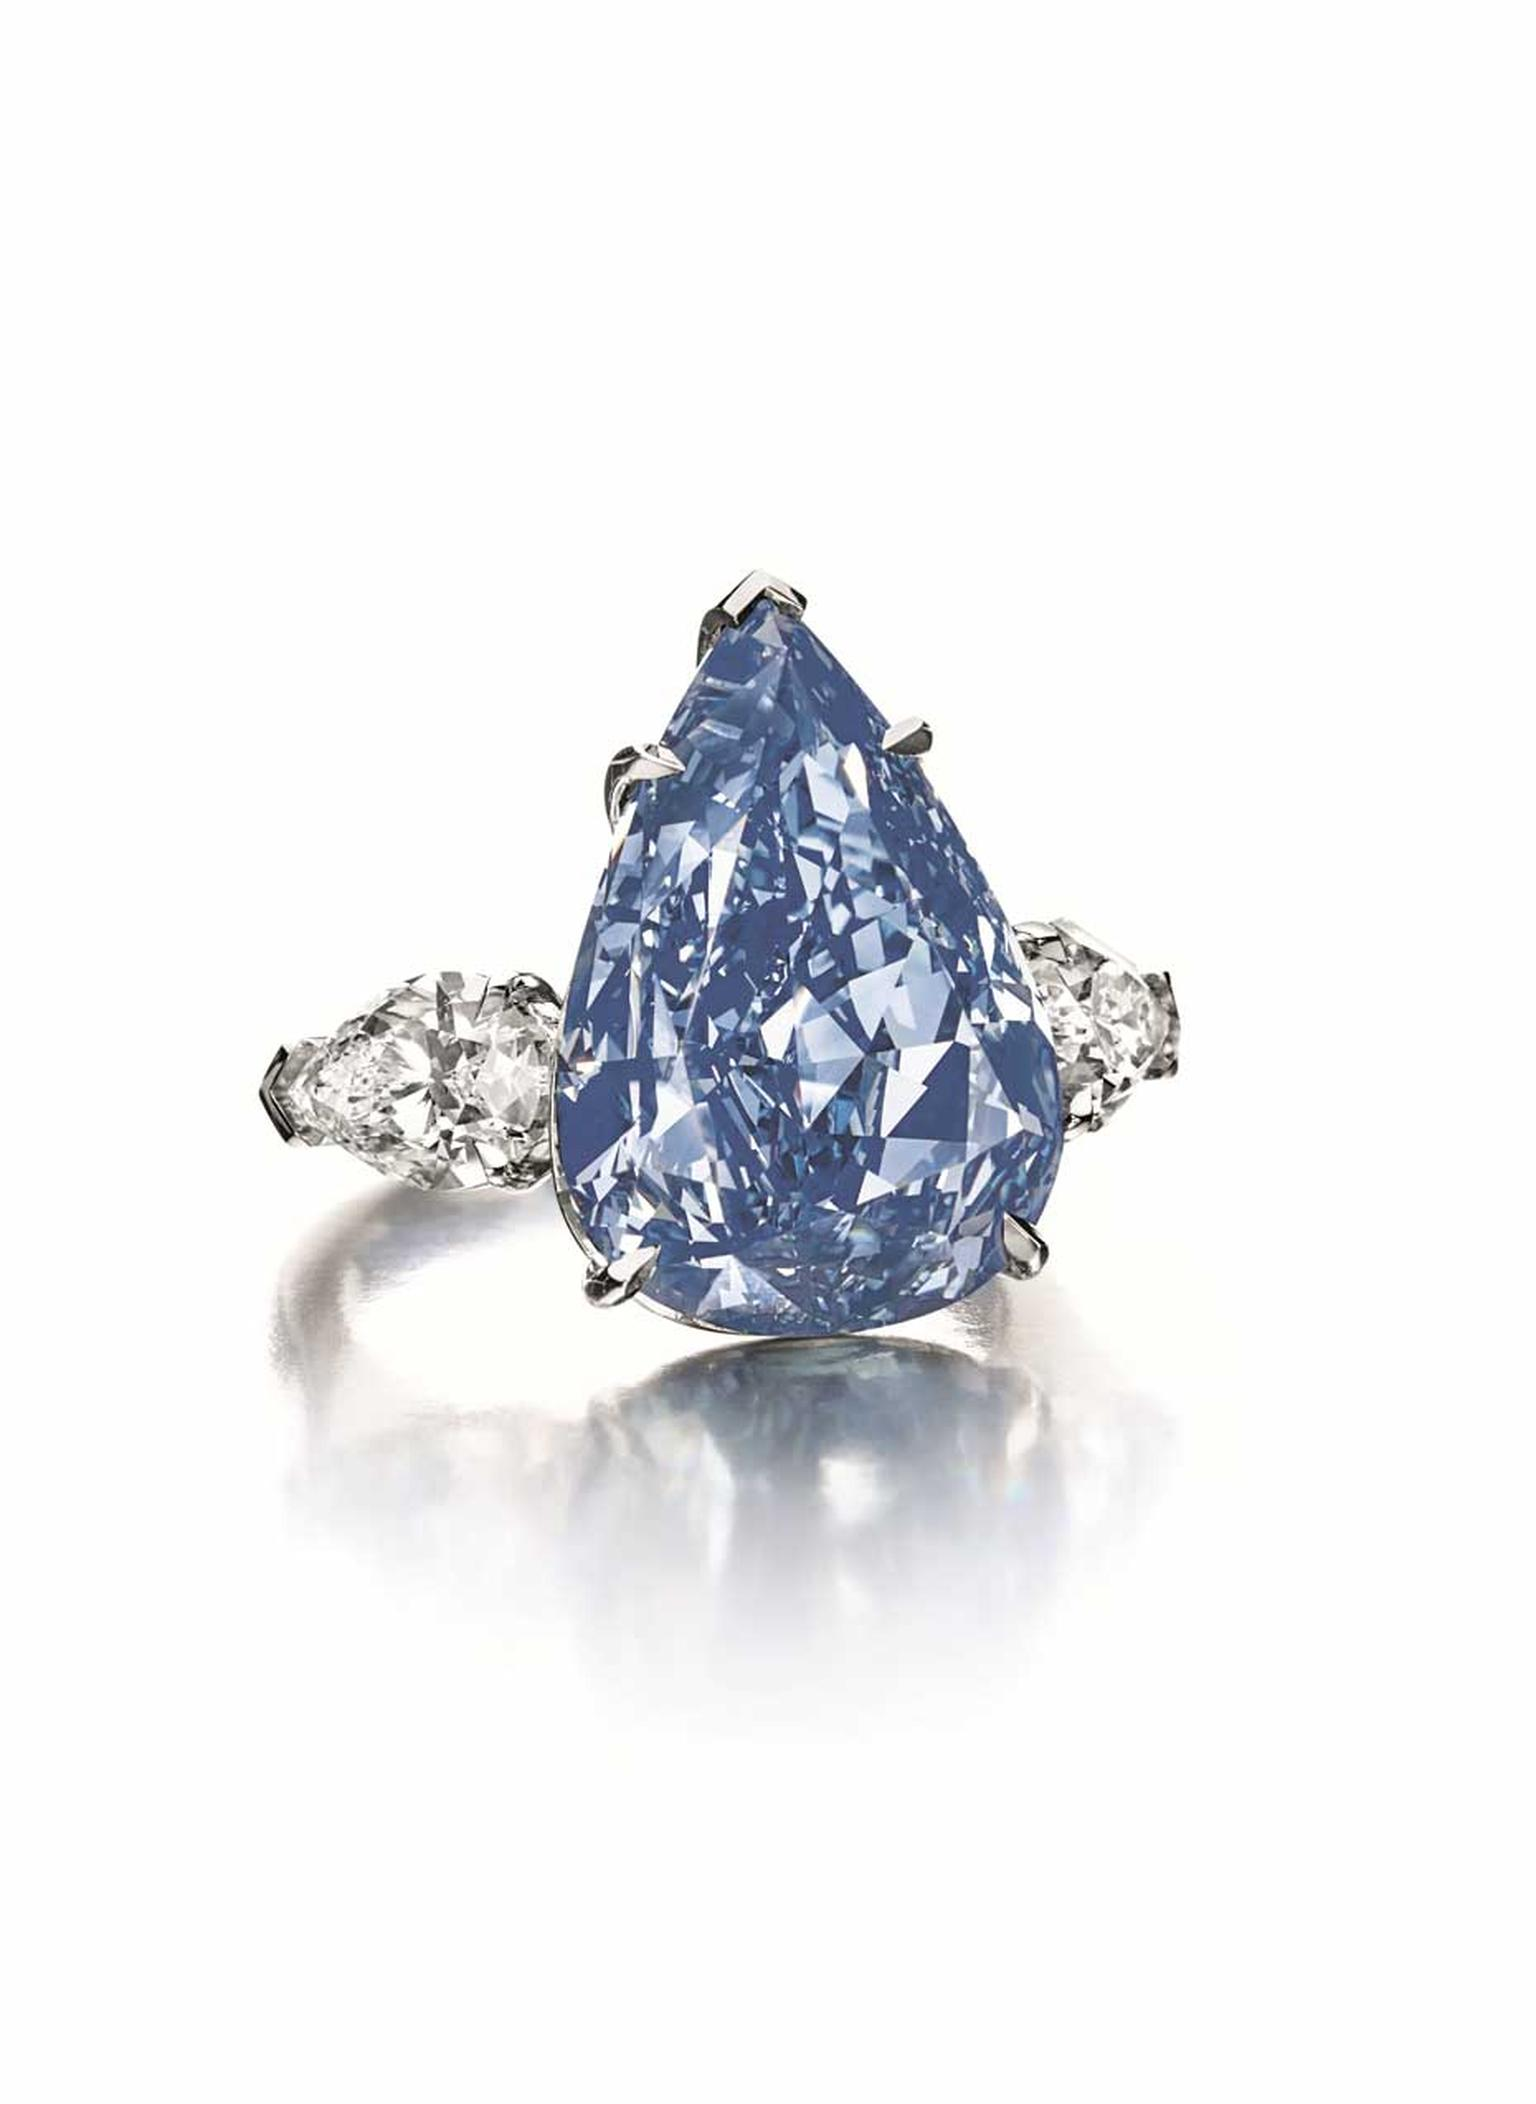 The Winston Blue, which sold for almost $23.8m at Christie's Geneva last May, was the auction house's top jewel for 2014.